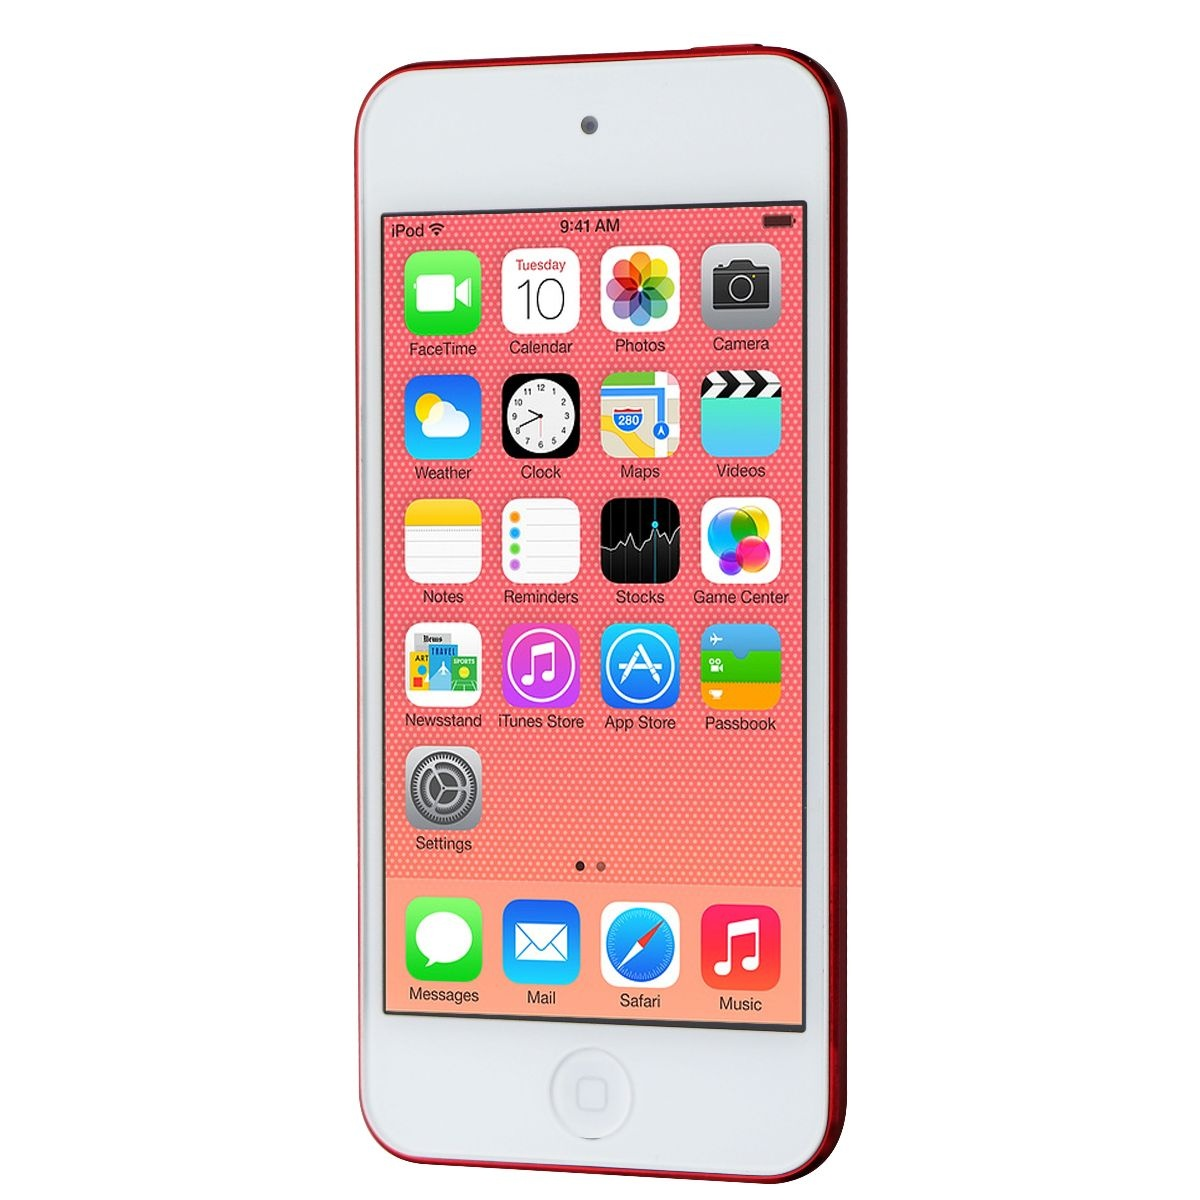 Apple iPod touch 5th Generation Red (16 GB) for sale ...  |Ipod 5th Generation Red